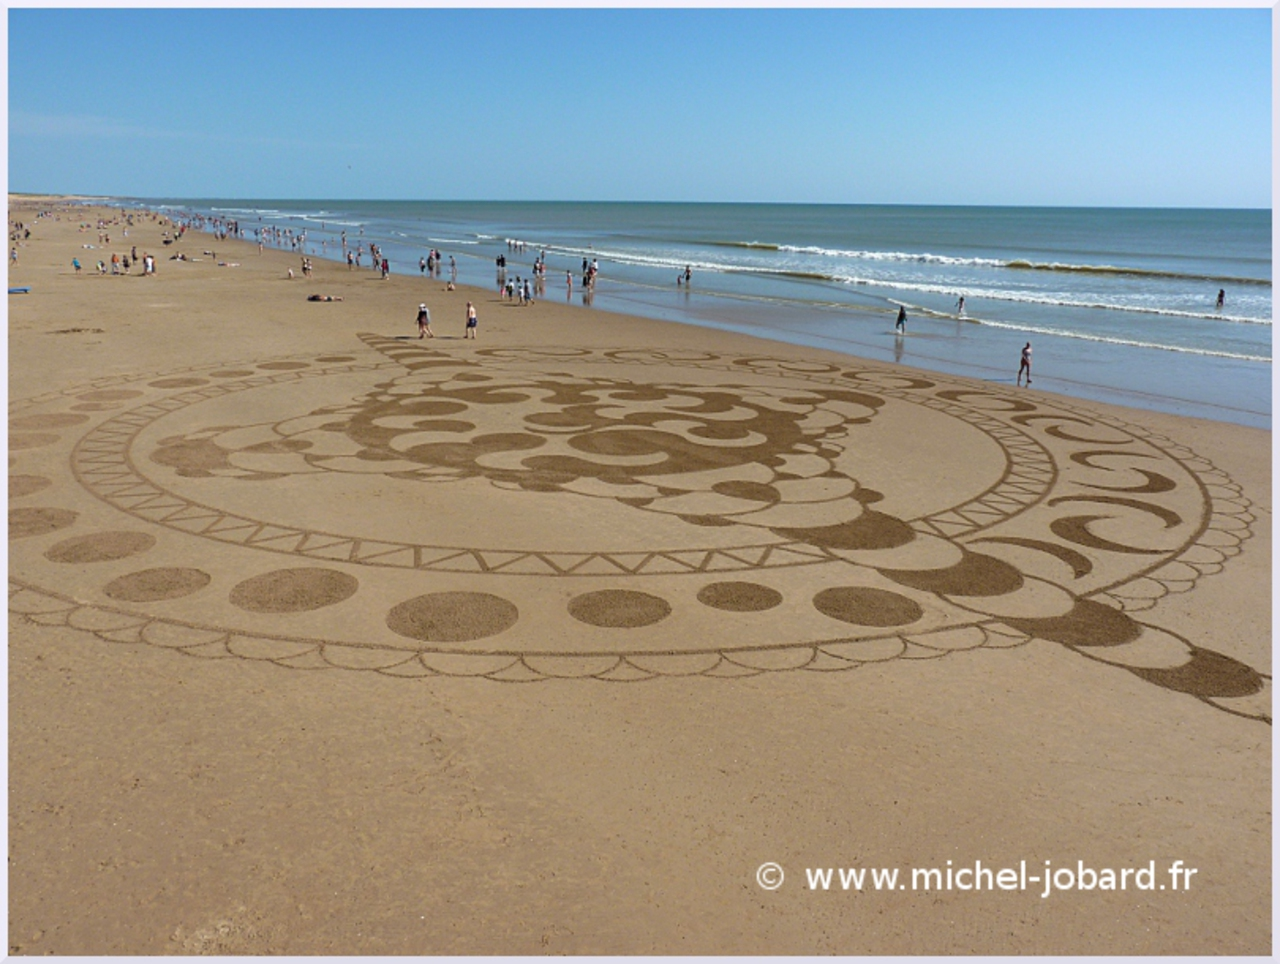 Fresque Beach art Soluna, Michel Jobard